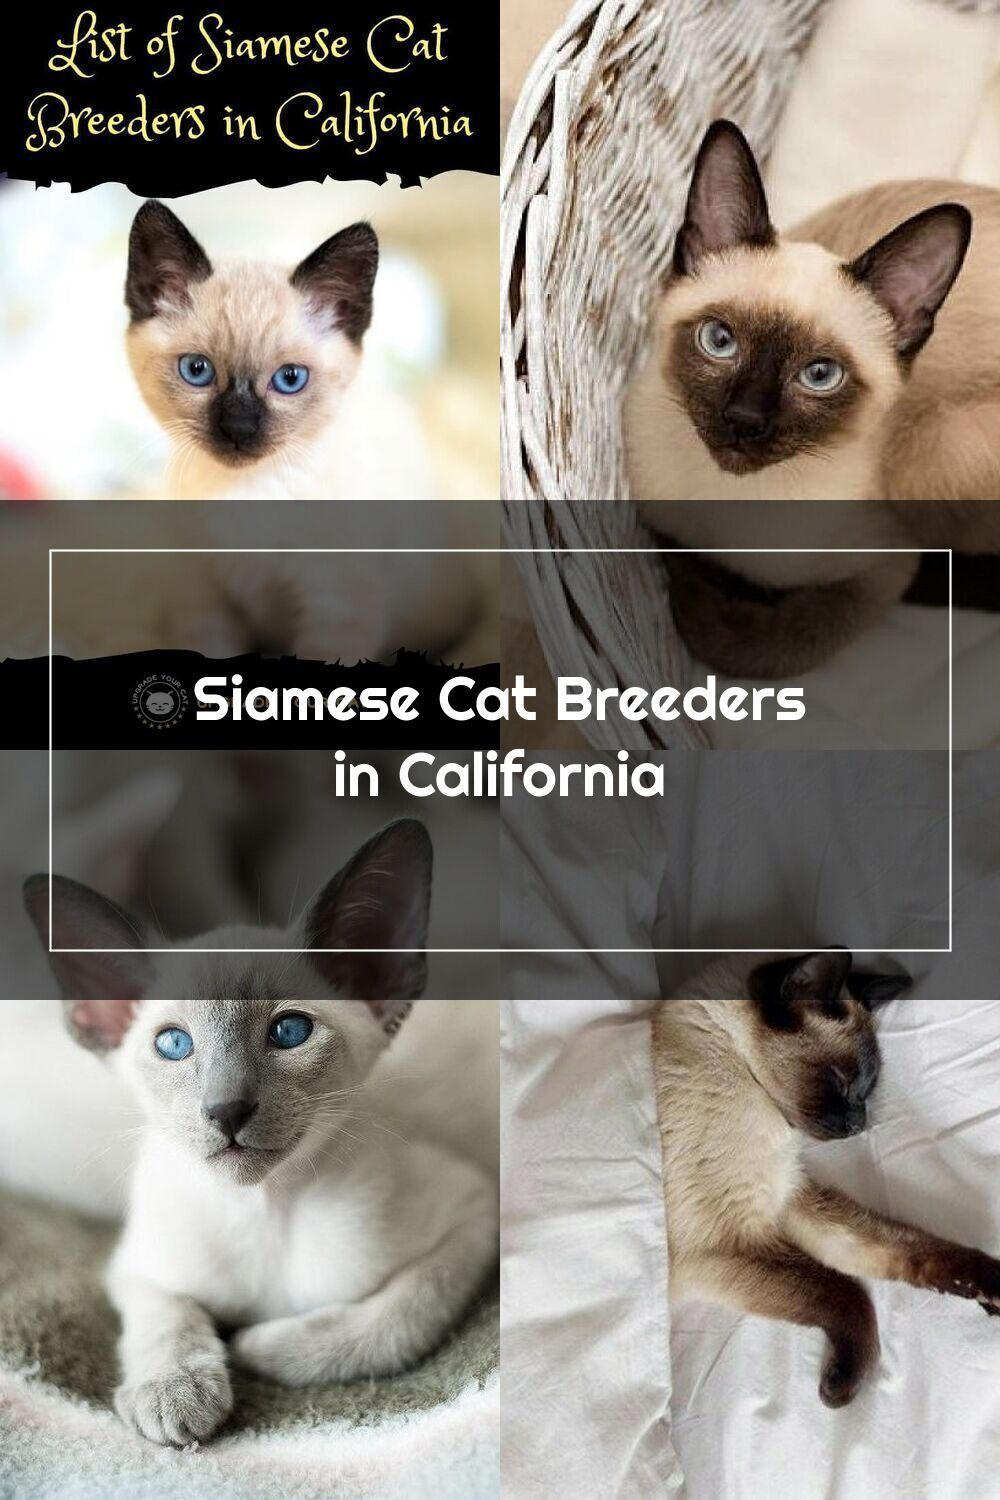 Looking For Siamese Cat Breeders In California Here S A List Of Breeders With Siamese Cats And Kittens For Sale In 2020 Siamese Cat Breeders Cat Breeder Siamese Cats